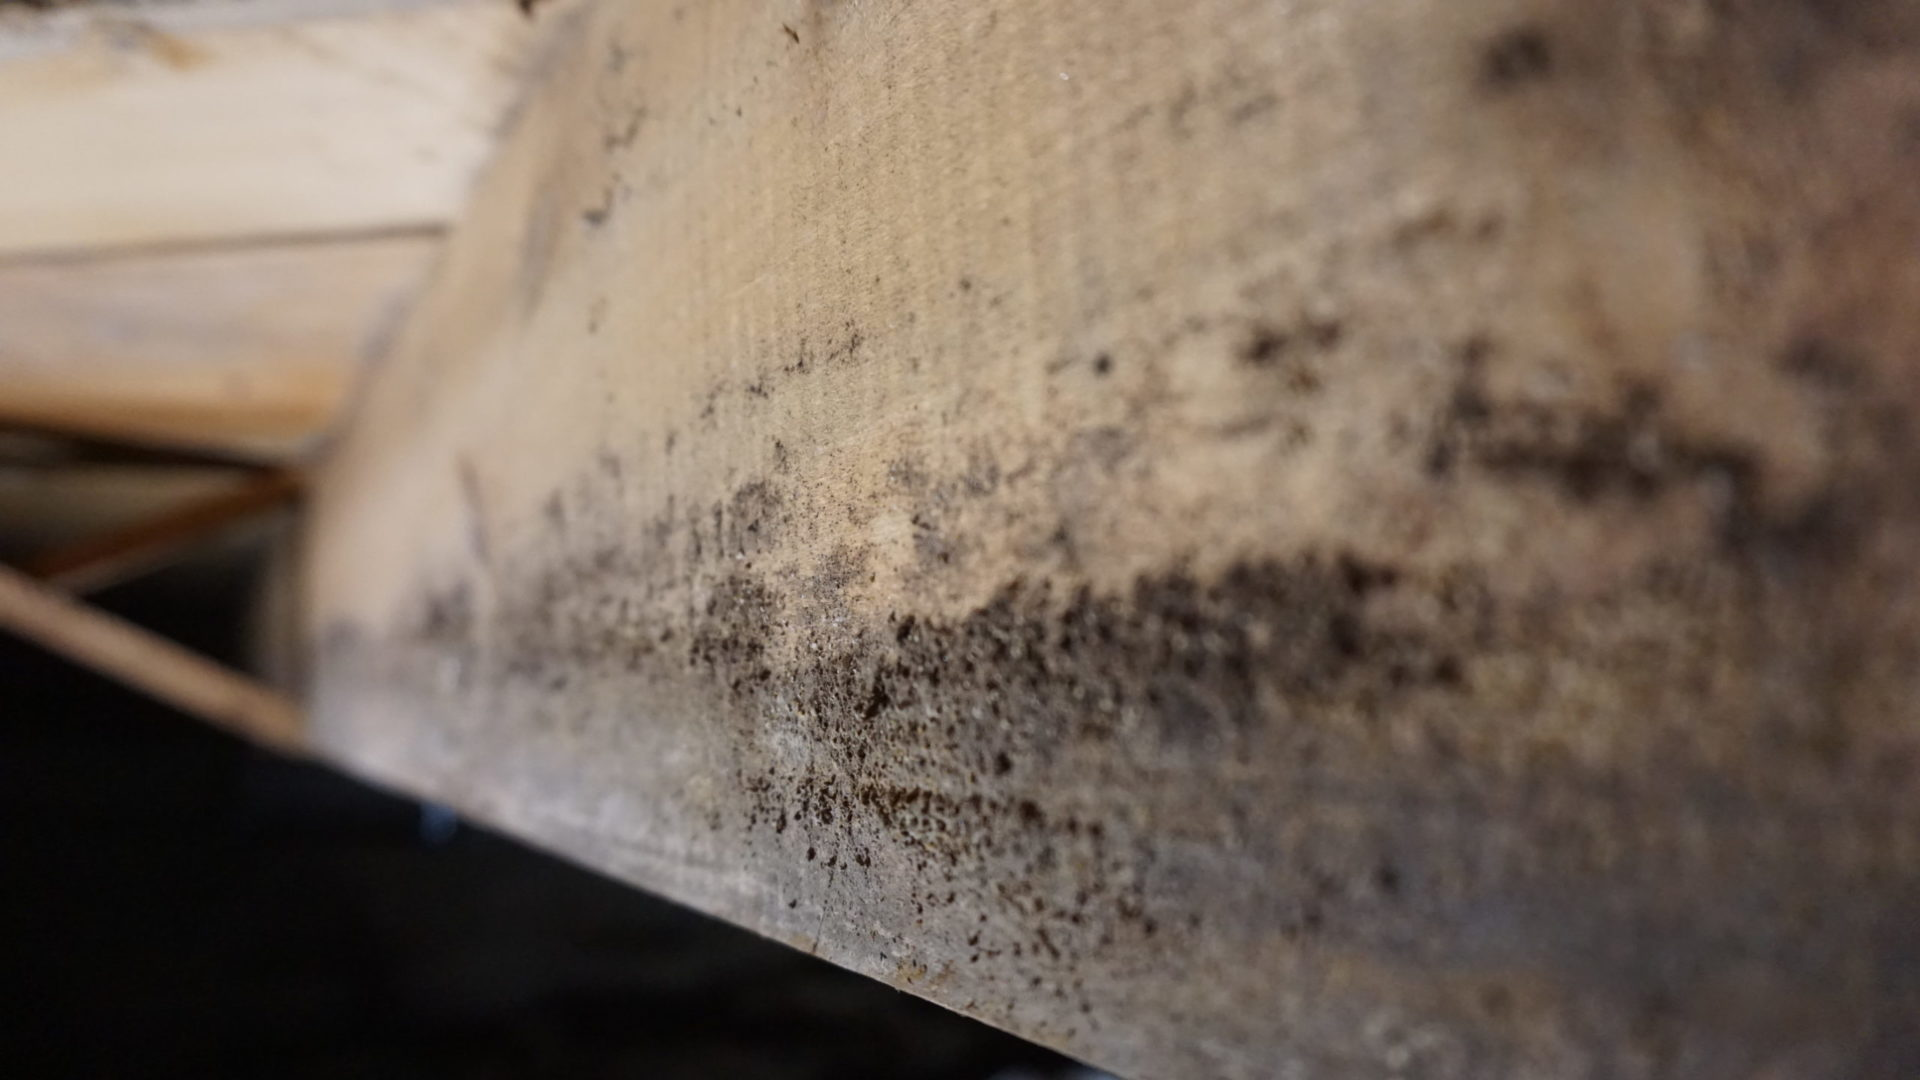 Mold in crawl space on wooden beams closeup